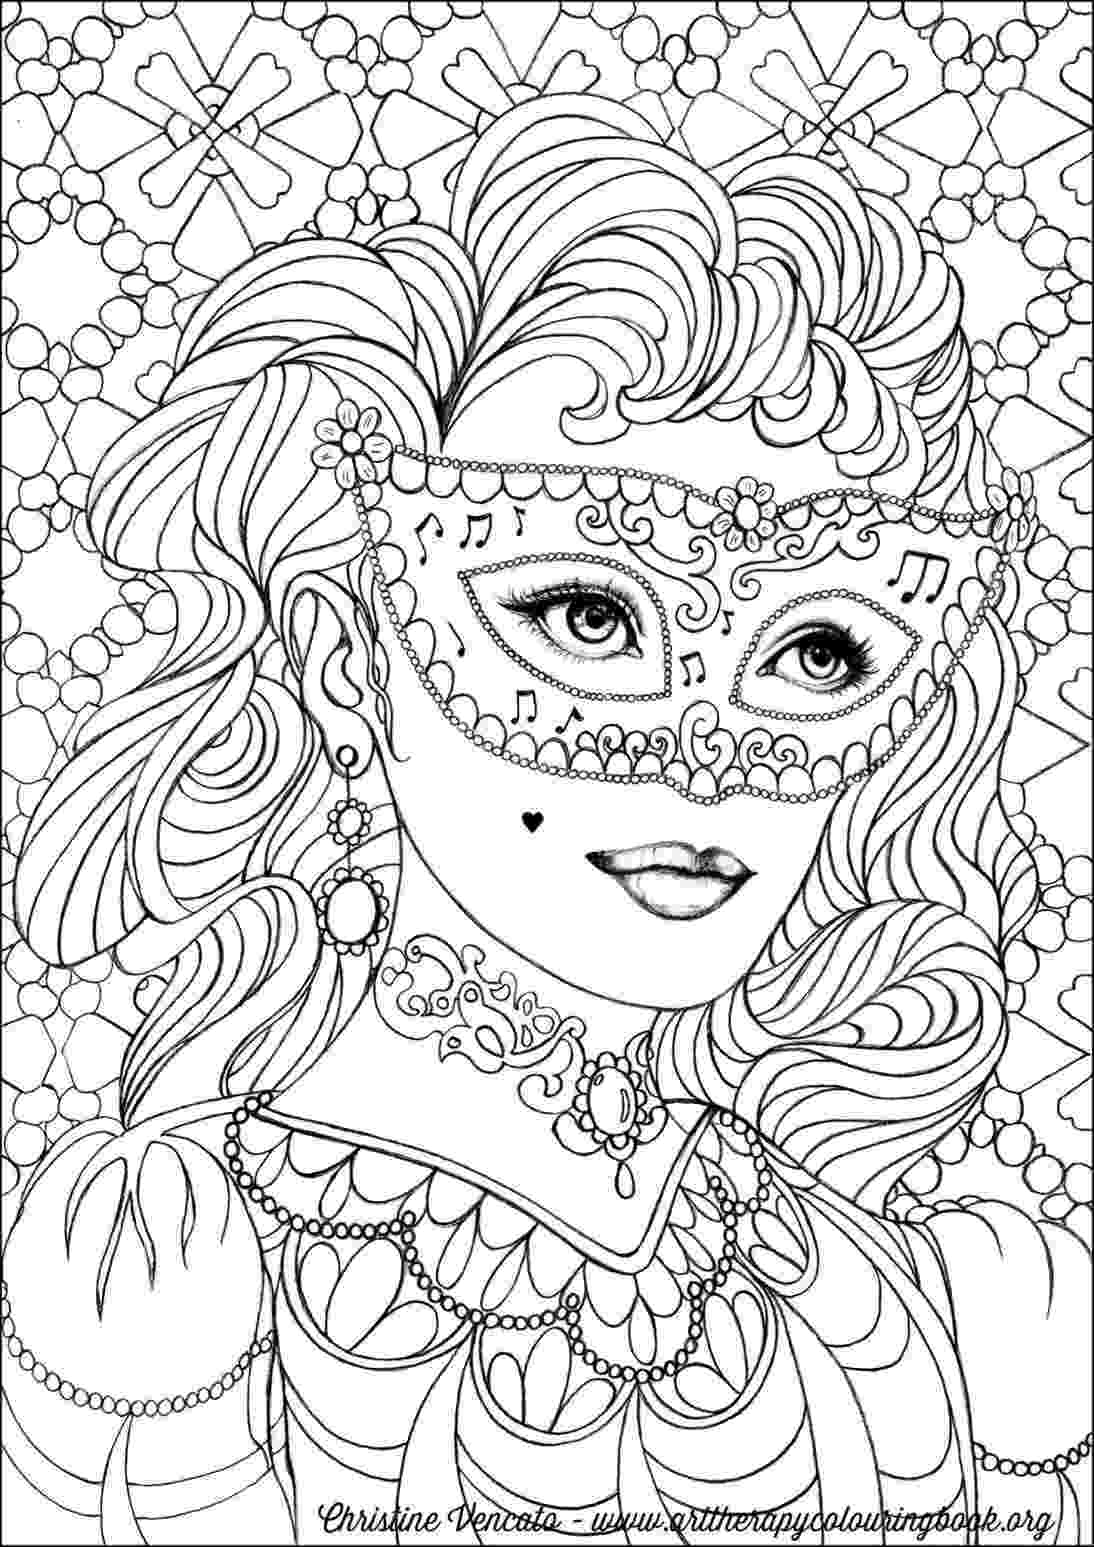 art pages to color free coloring page from adult coloring worldwide art by art pages color to